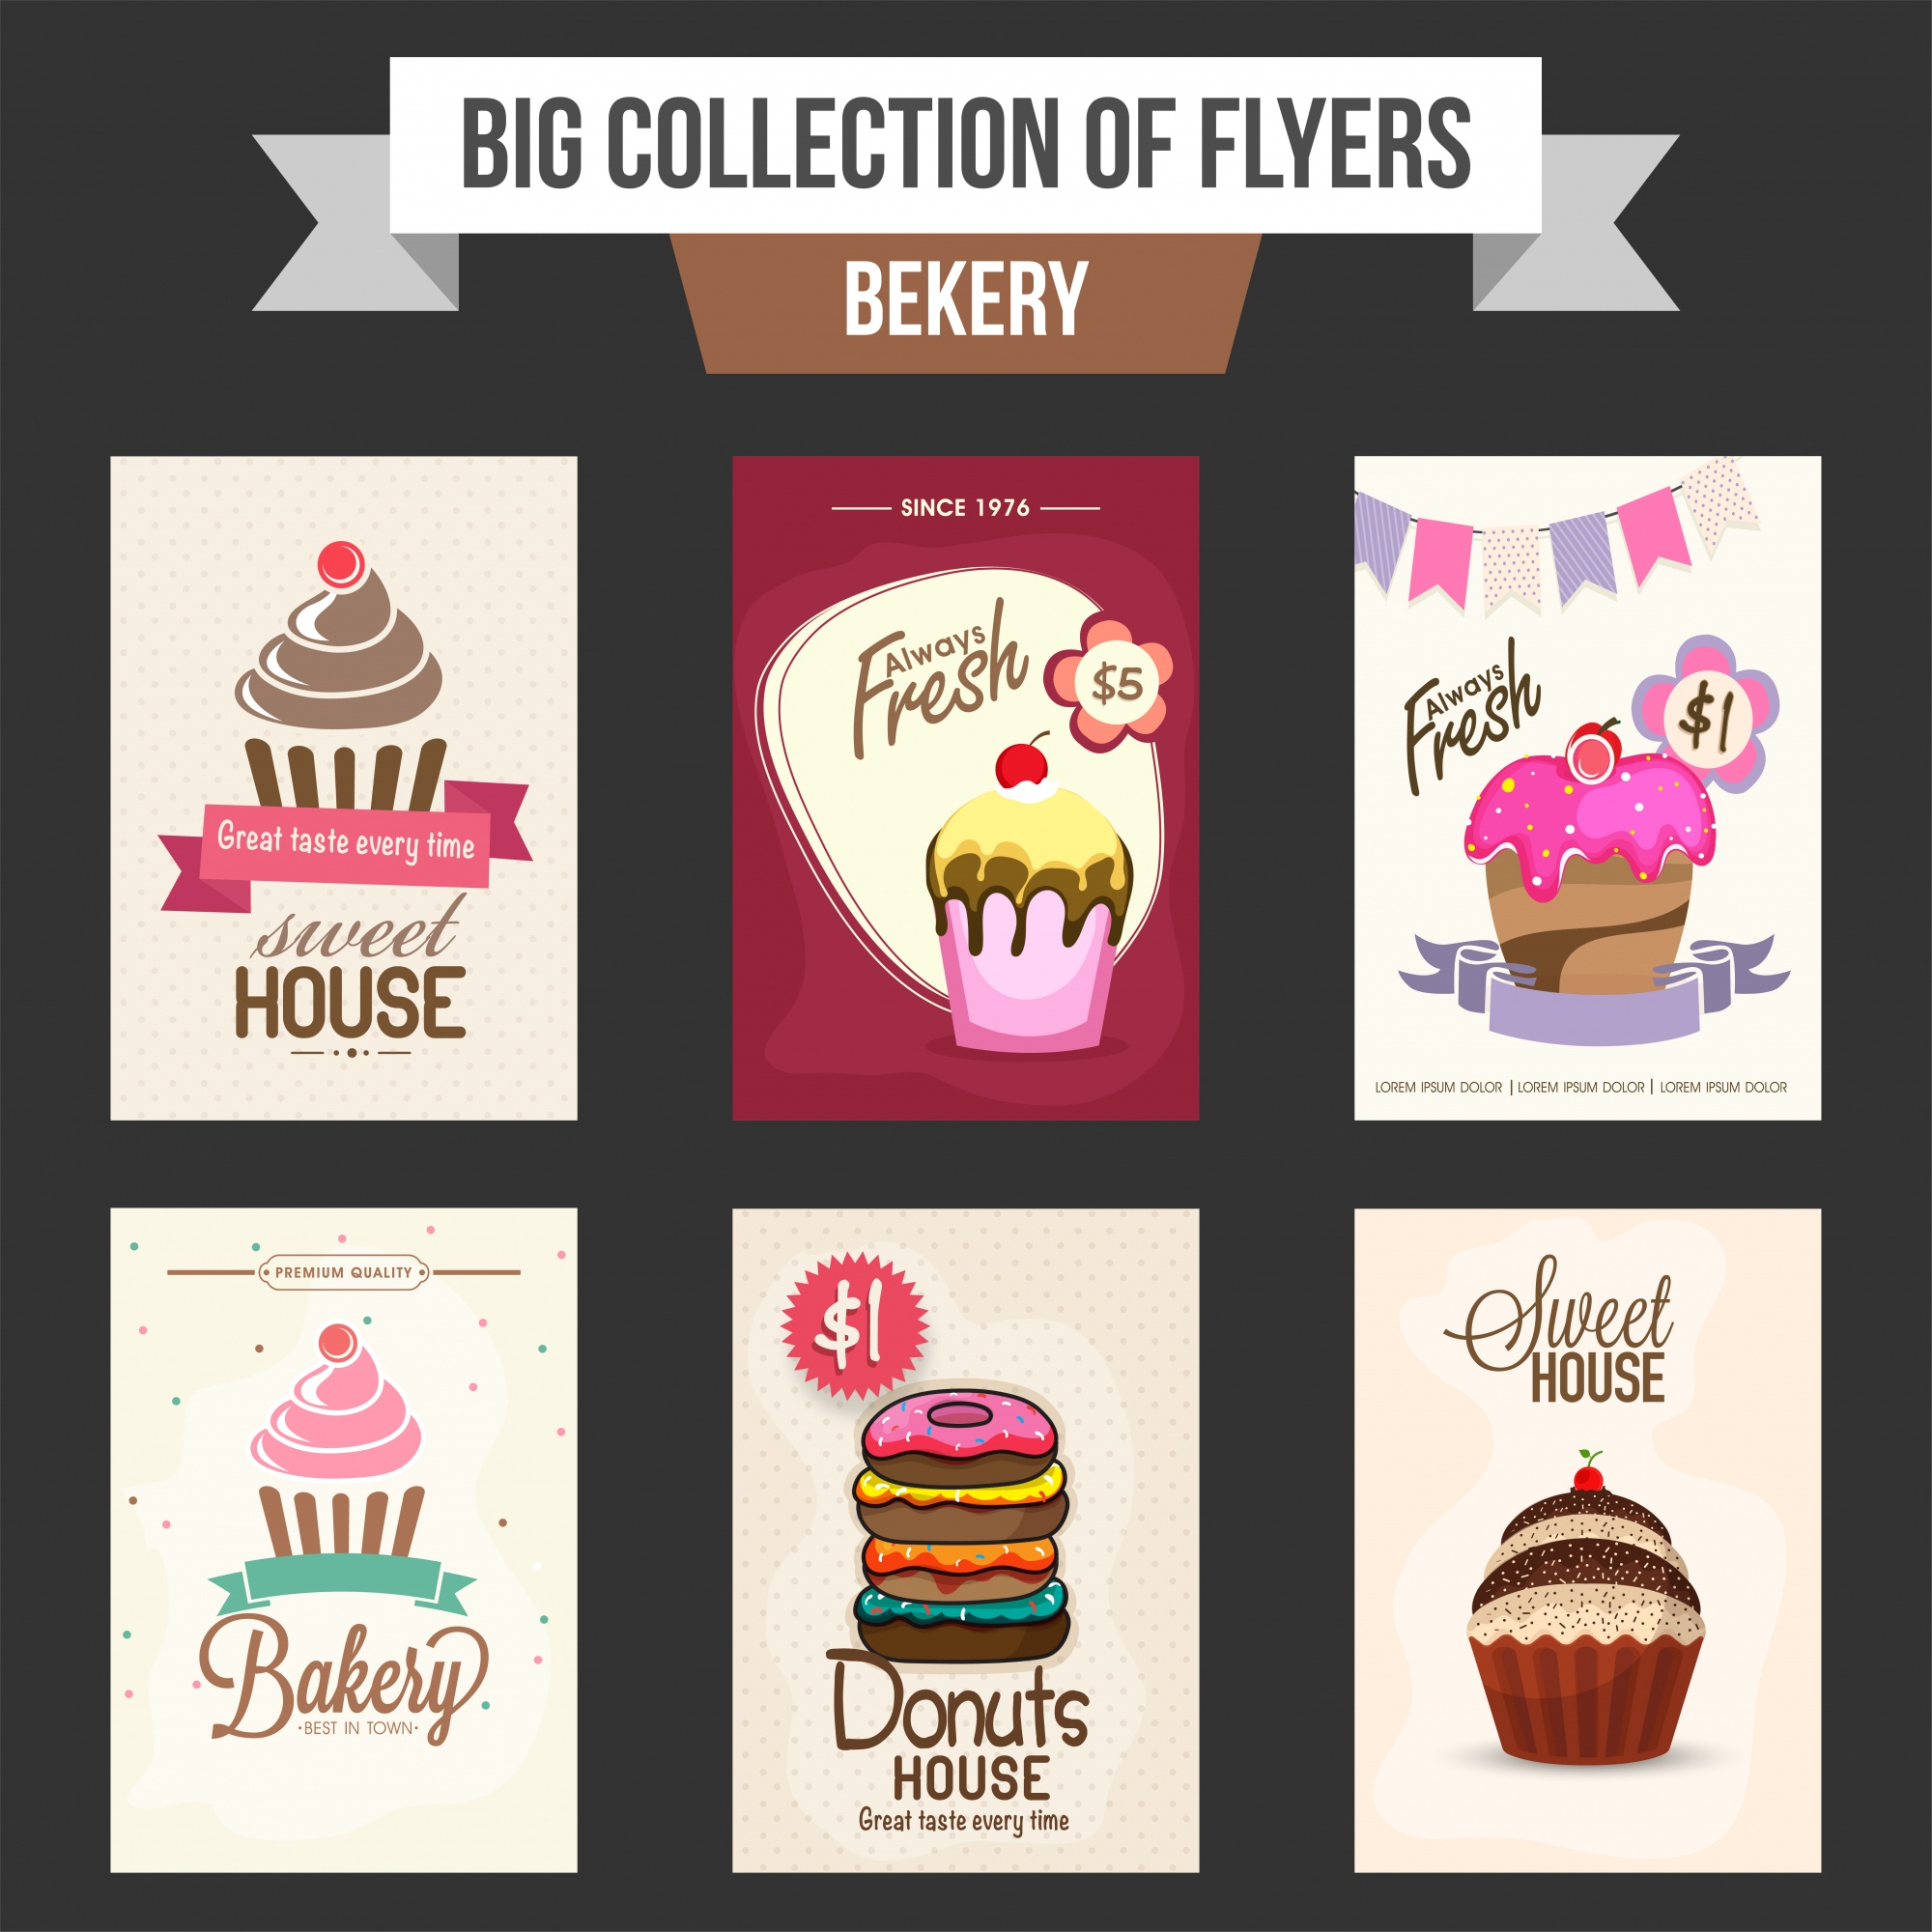 Big collection of Bakery flyers or templates design with illustration of sweet cupcakes and donut